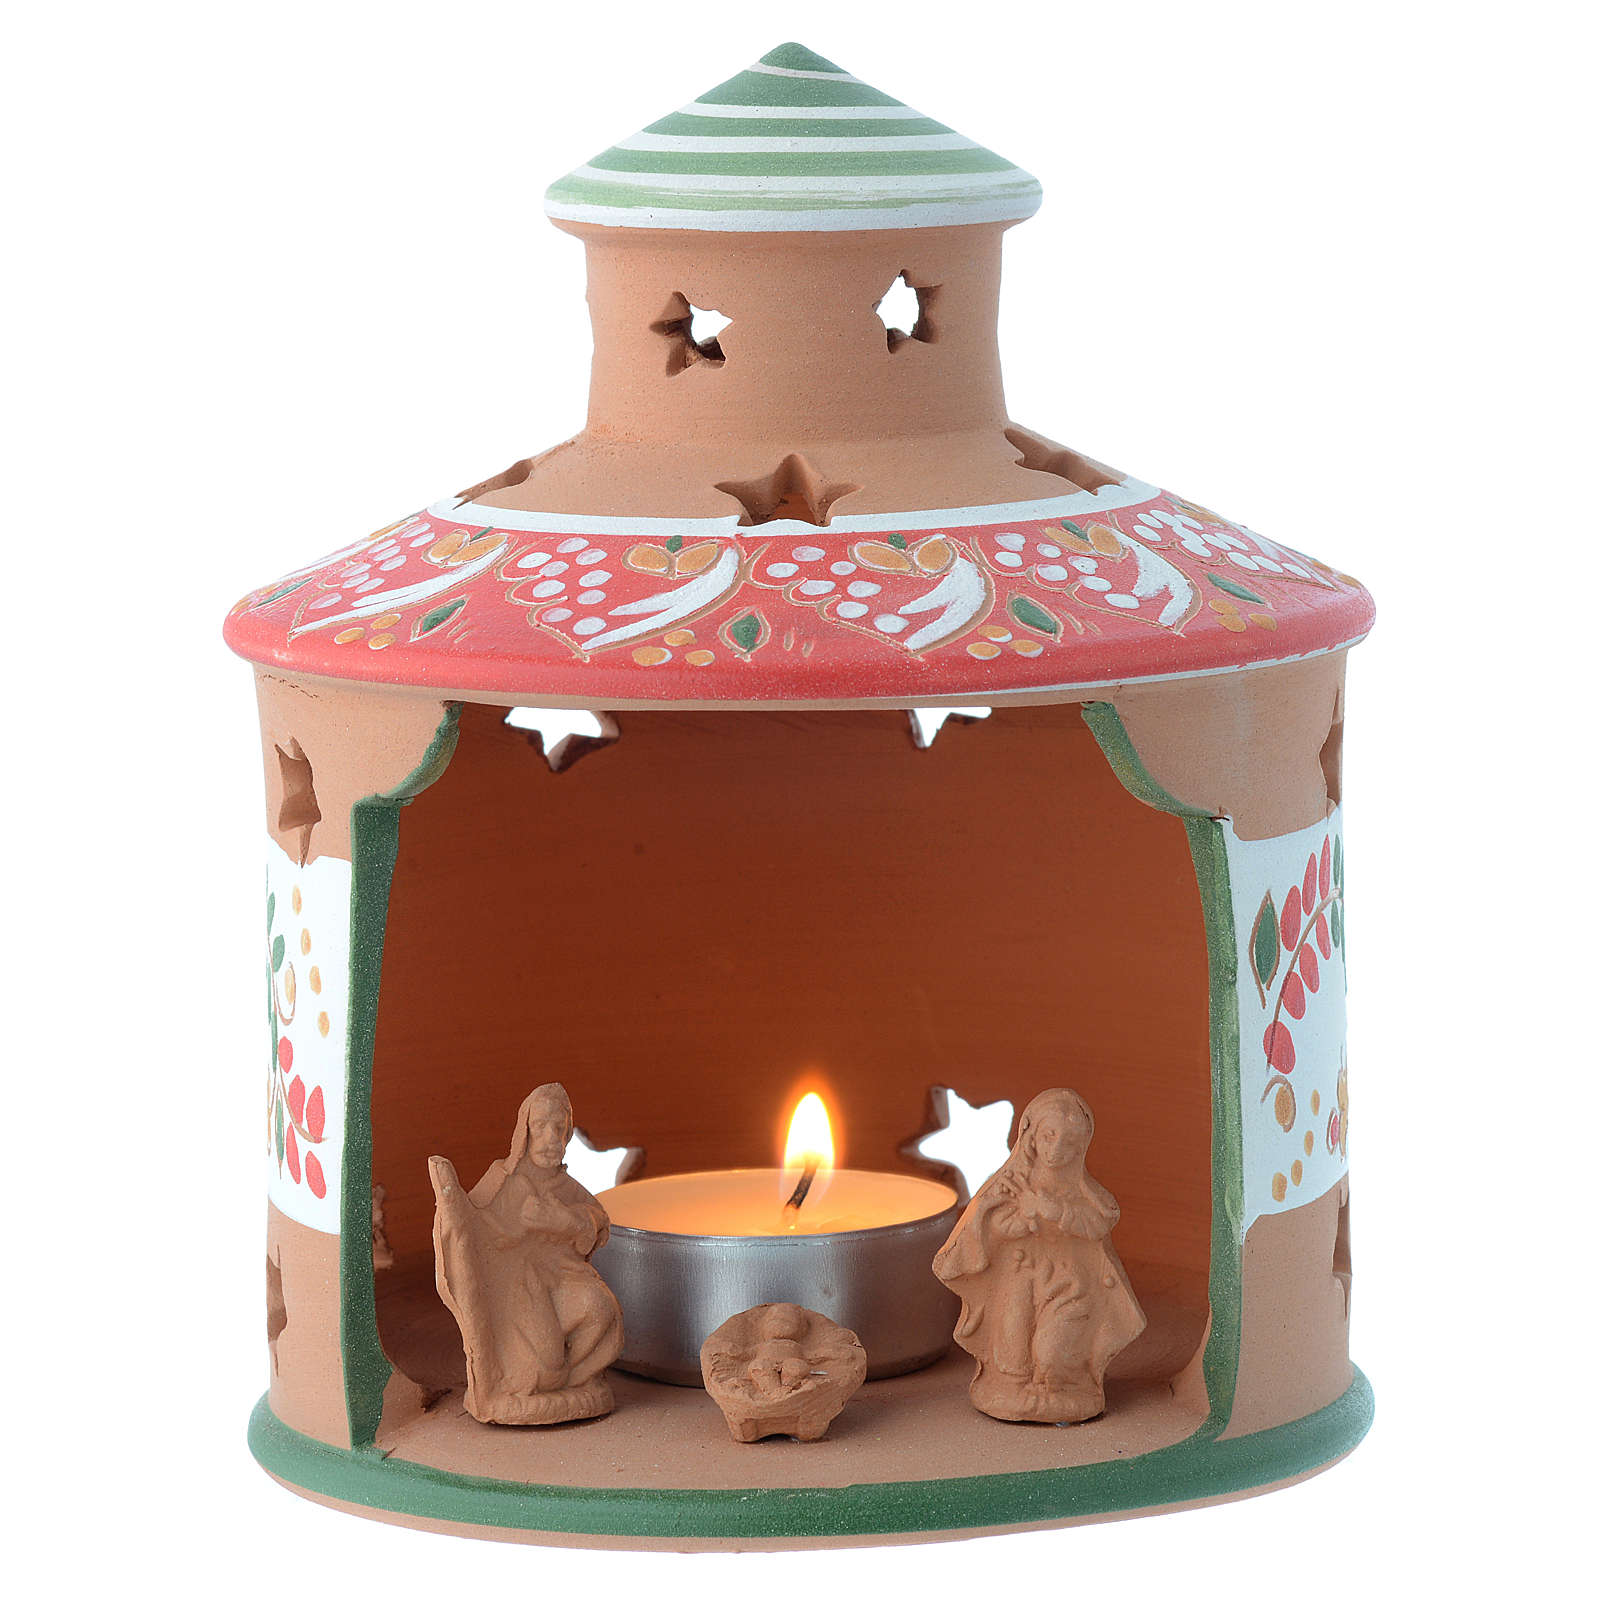 Drilled hut shaped candle holder in terracotta from Deruta 13 cm 4